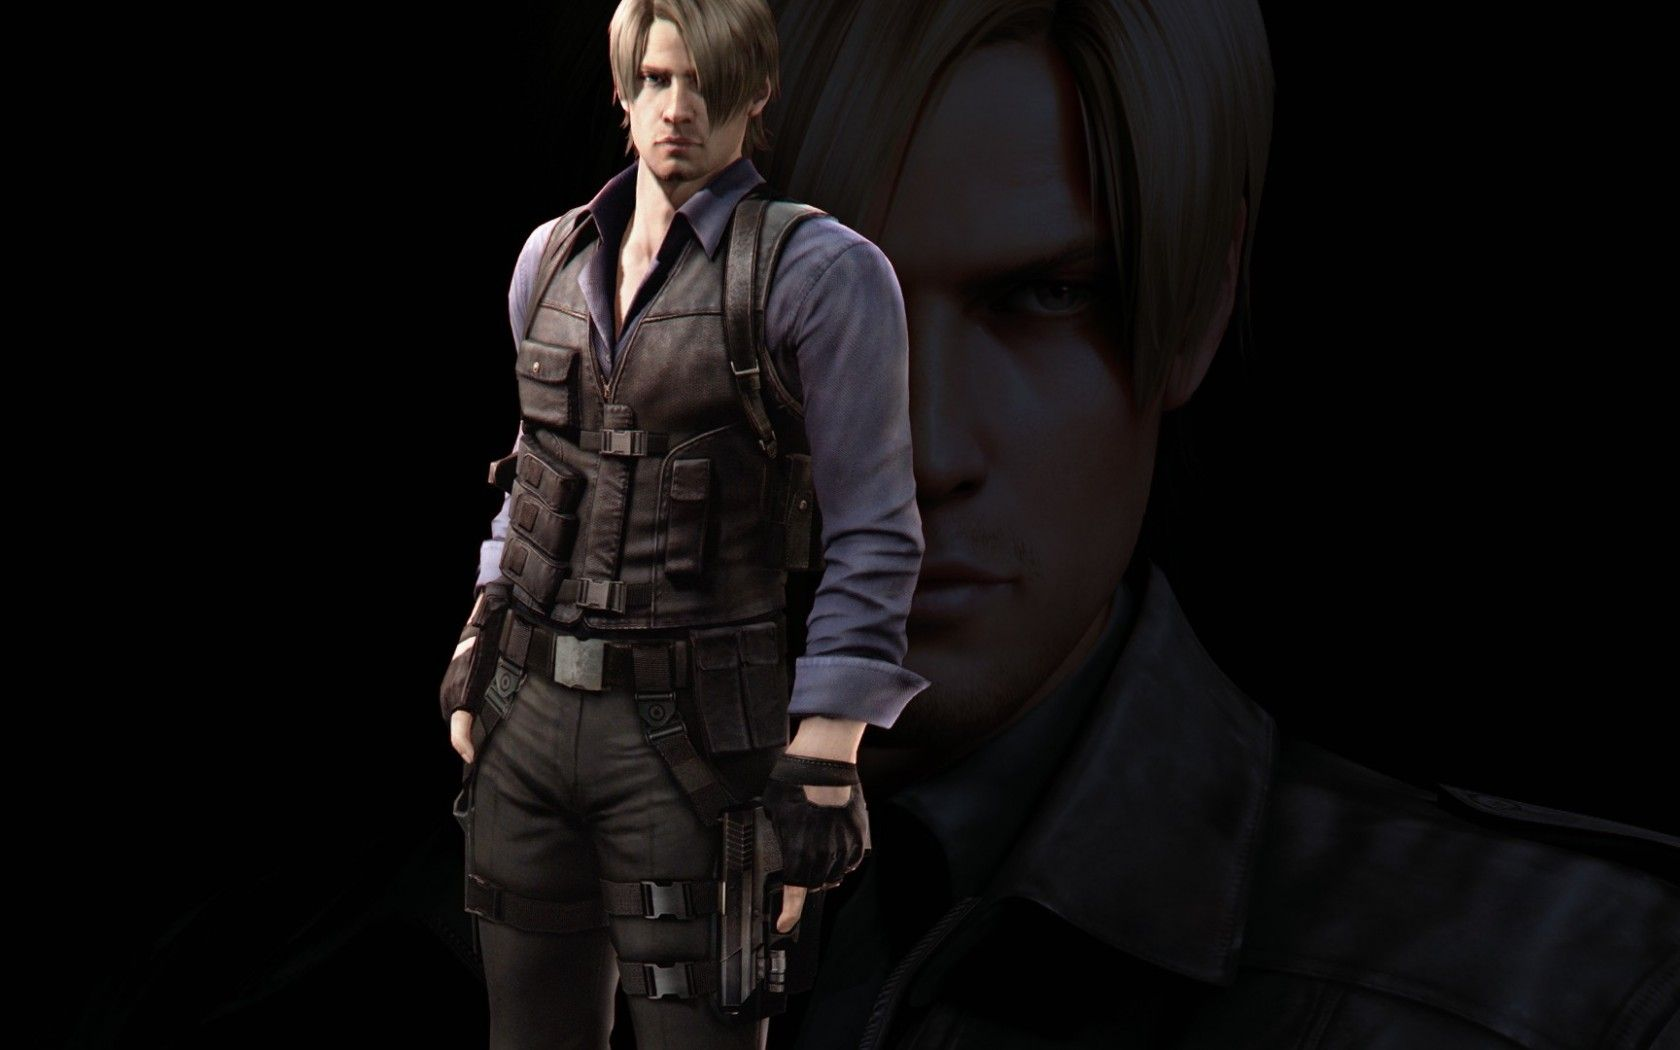 Leon S Kennedy Wallpaper Resident Evil 6 Google Search Leon S